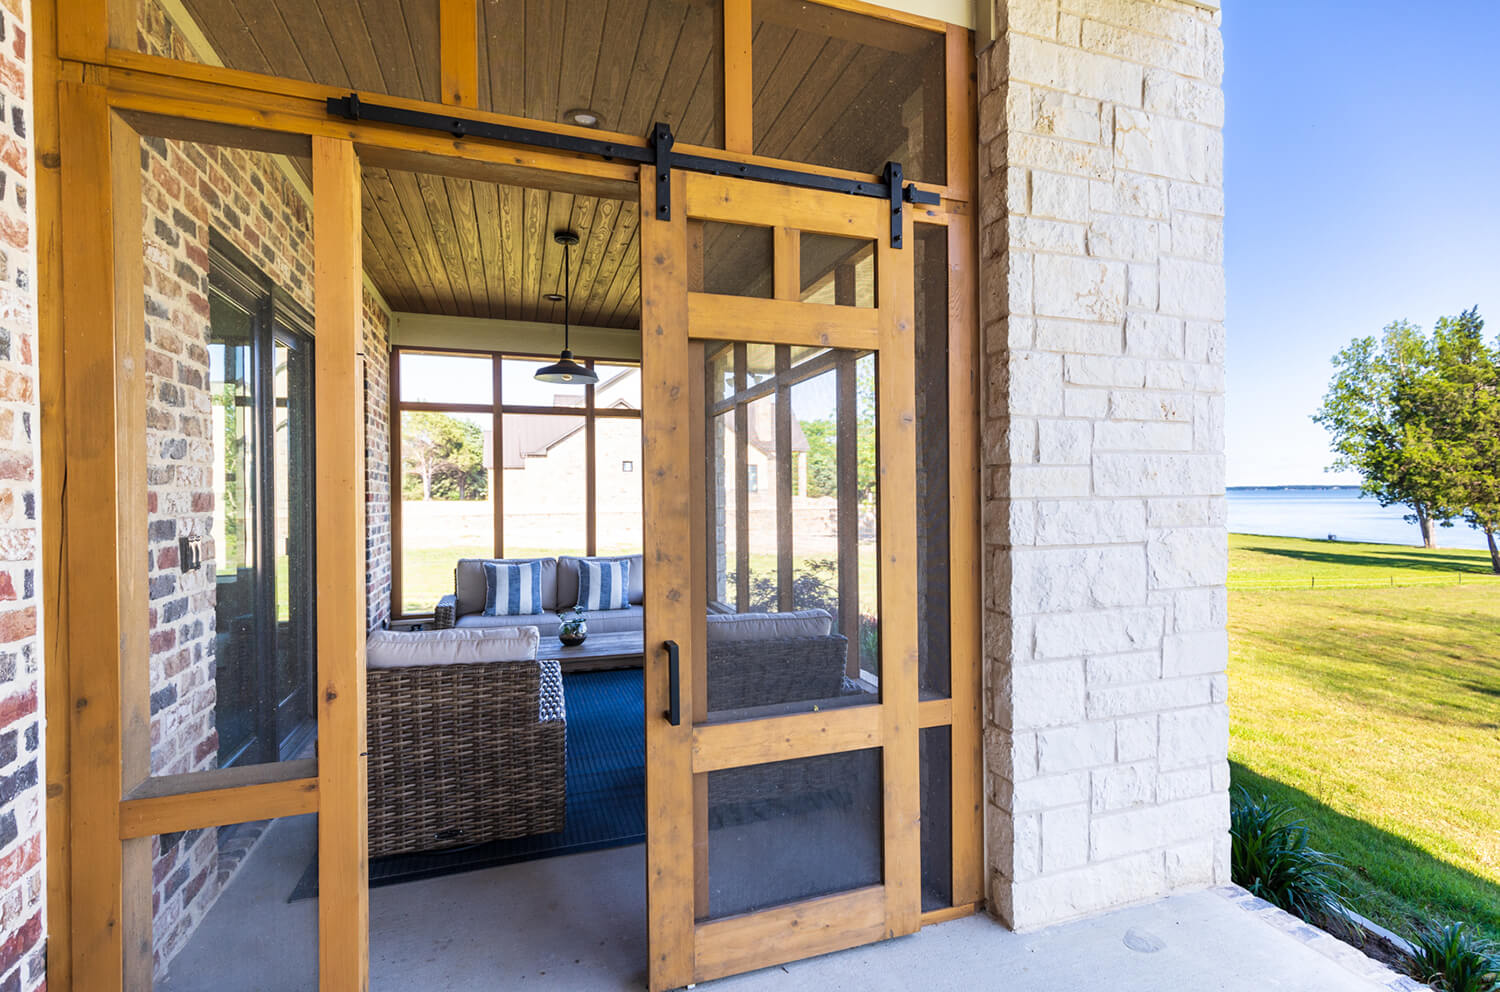 A new construction and whole home furnishings project in Richland Chambers, Texas